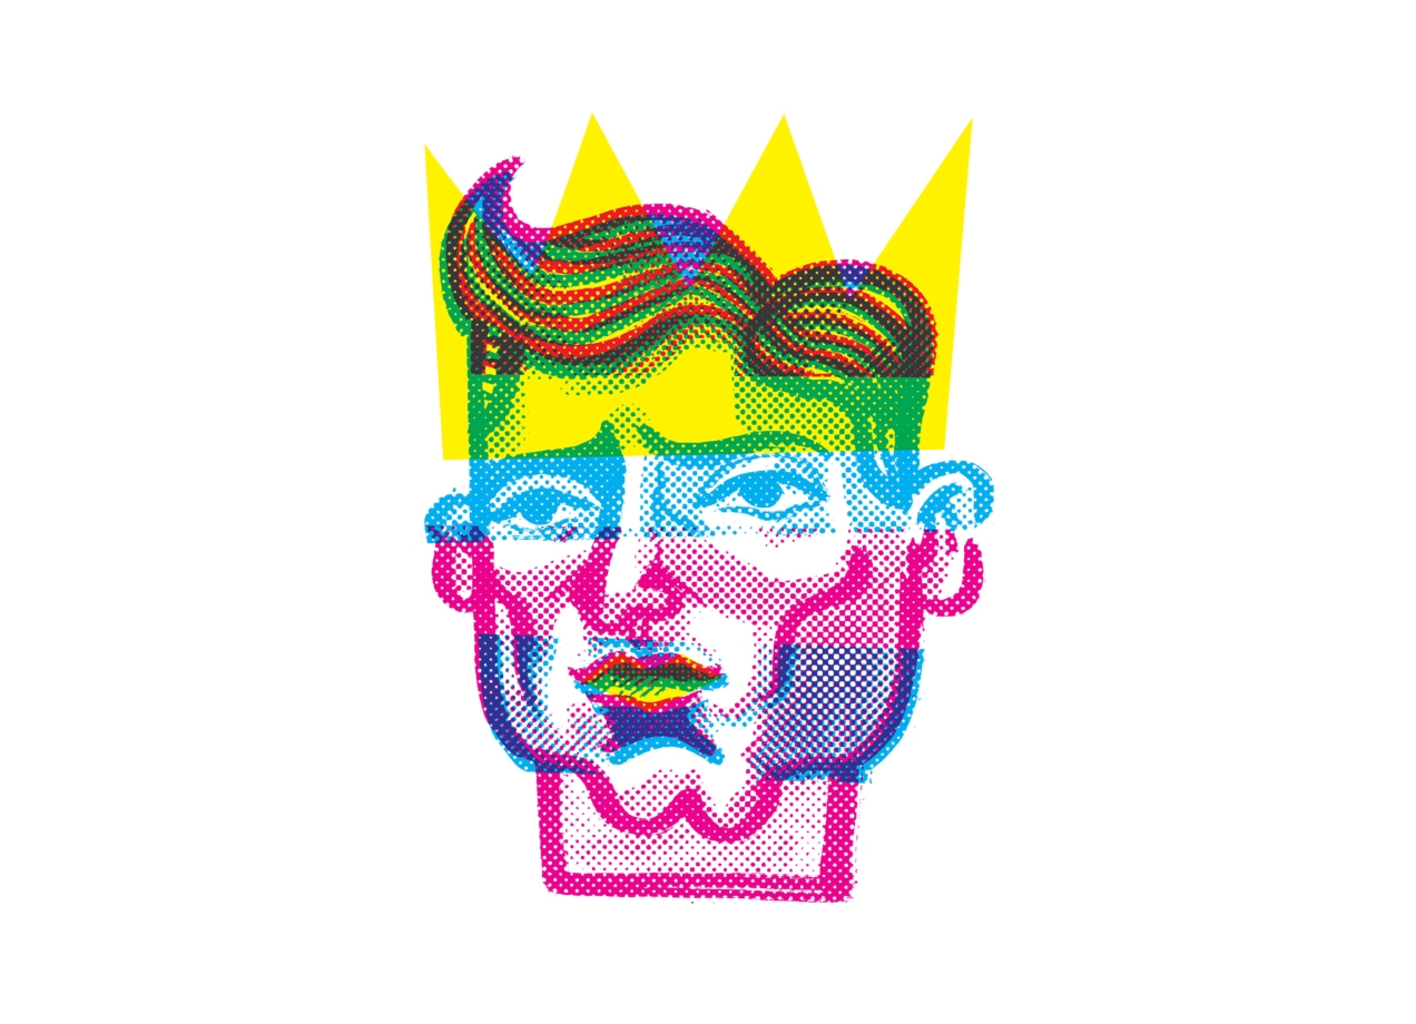 Threadless: Don't You Know Your Queen